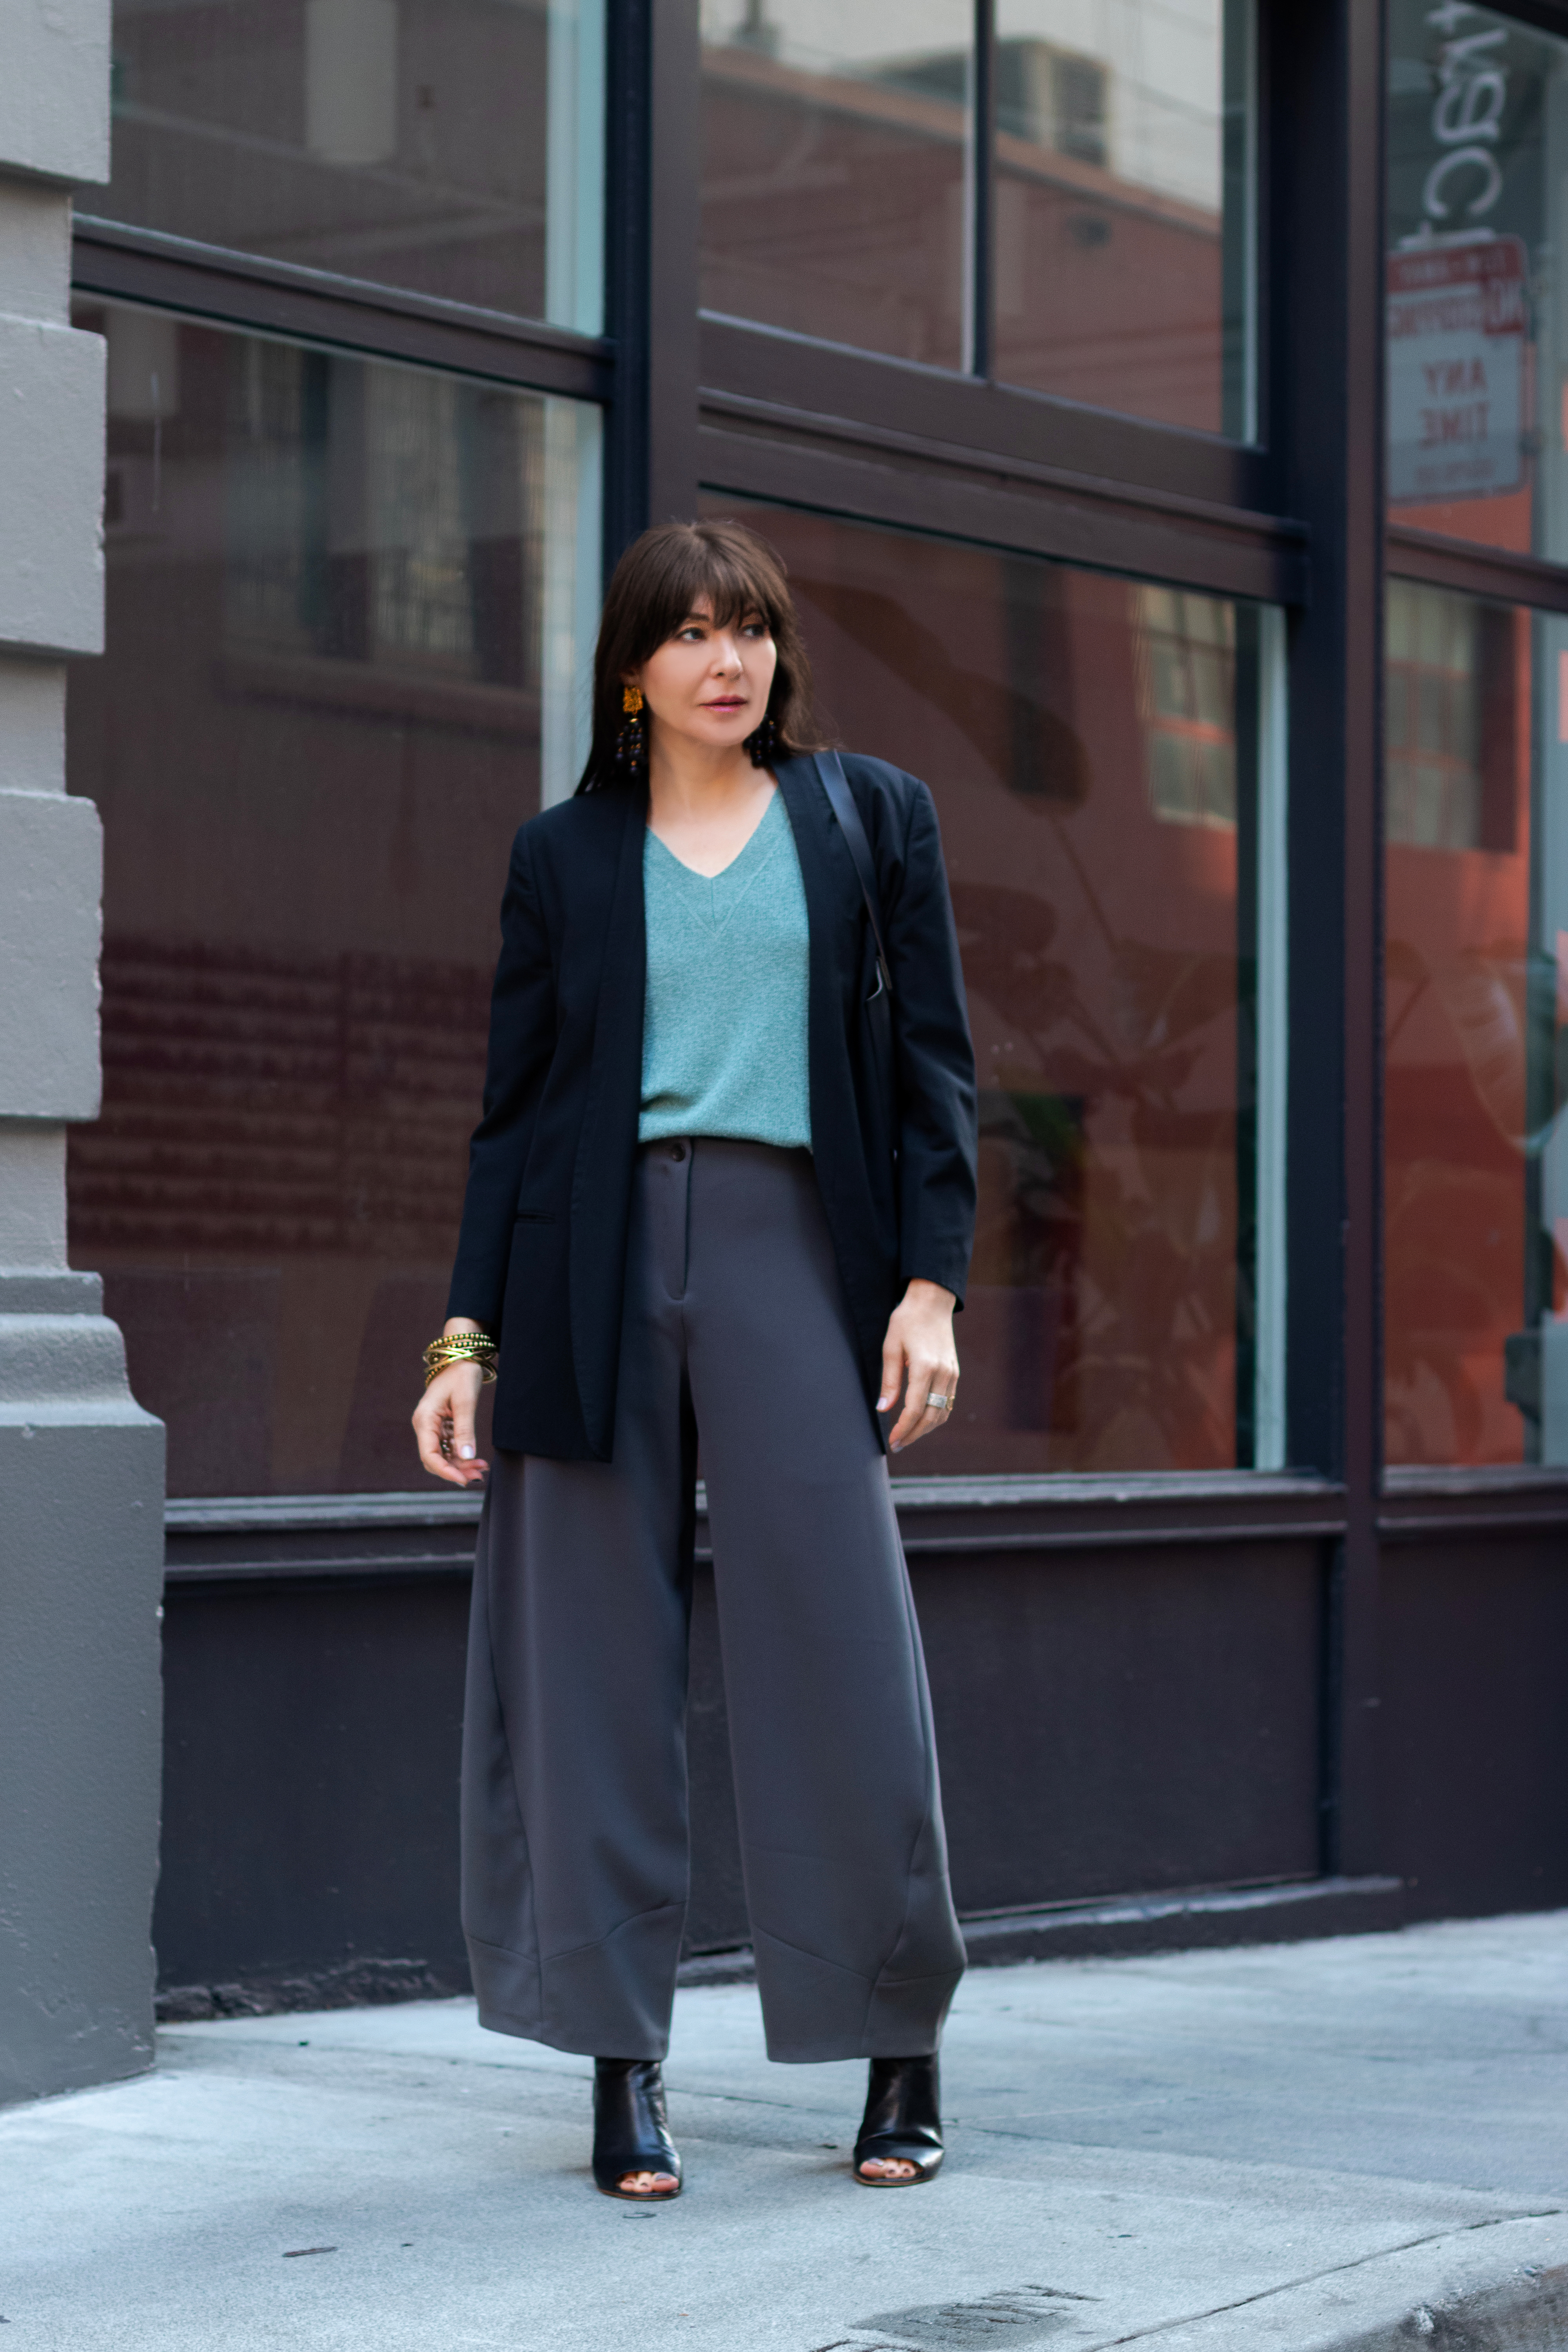 Oversized blazer and wide leg pant.